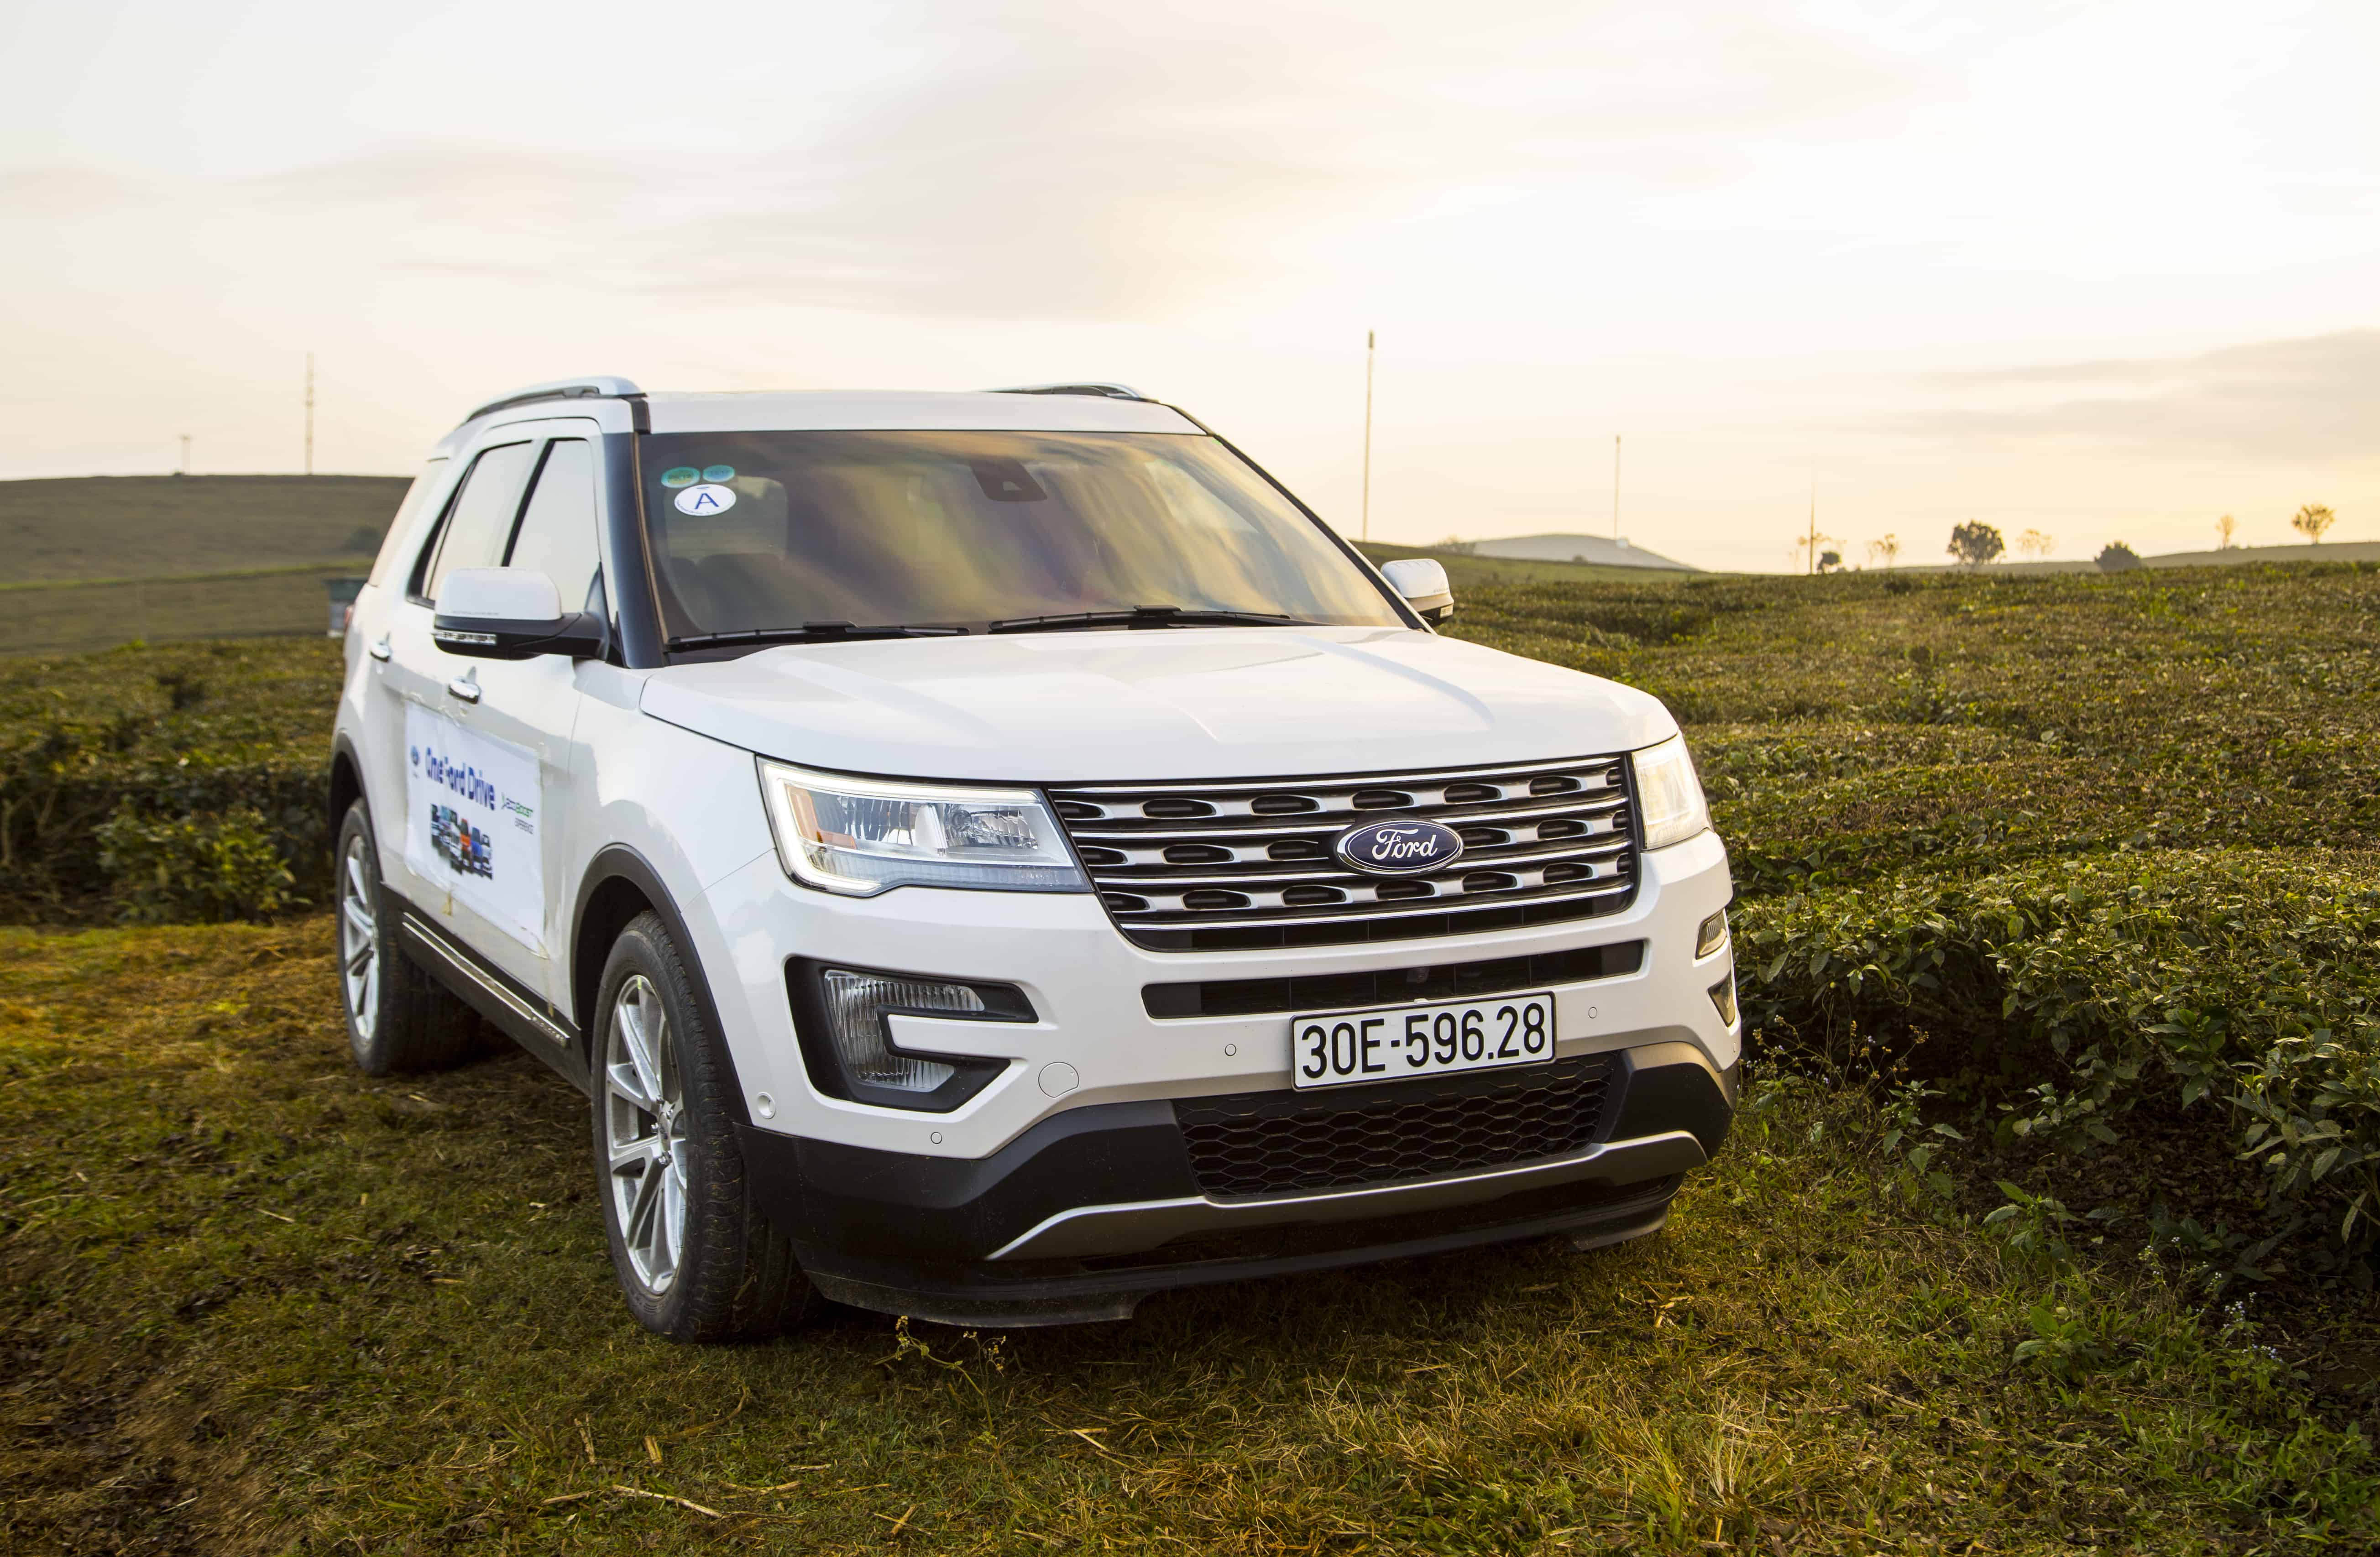 Spat of Hand Injuries Sparks Massive Ford Explorer Recall